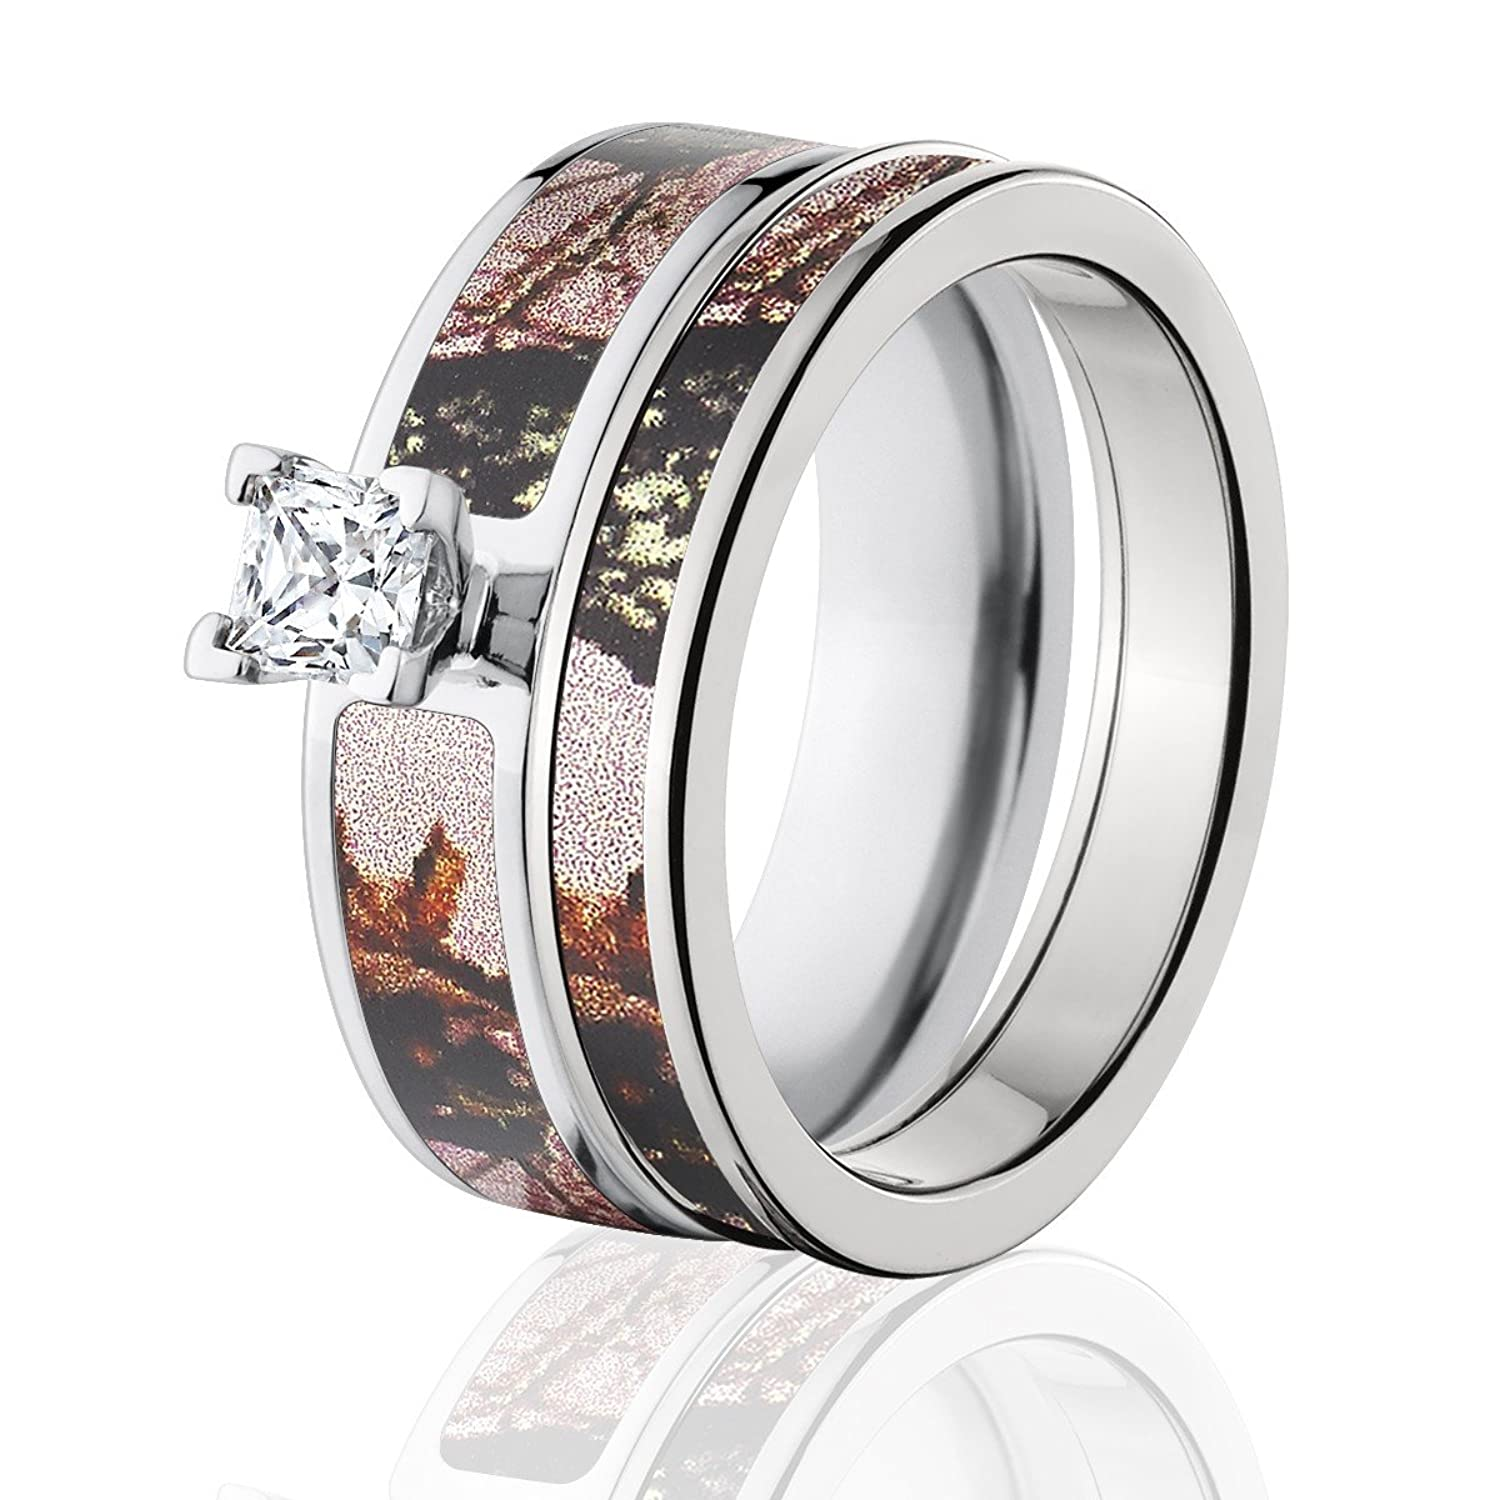 amazoncom mossy oak camo bridal set camo wedding rings pink break up camo rings jewelry - Camo Wedding Ring Set